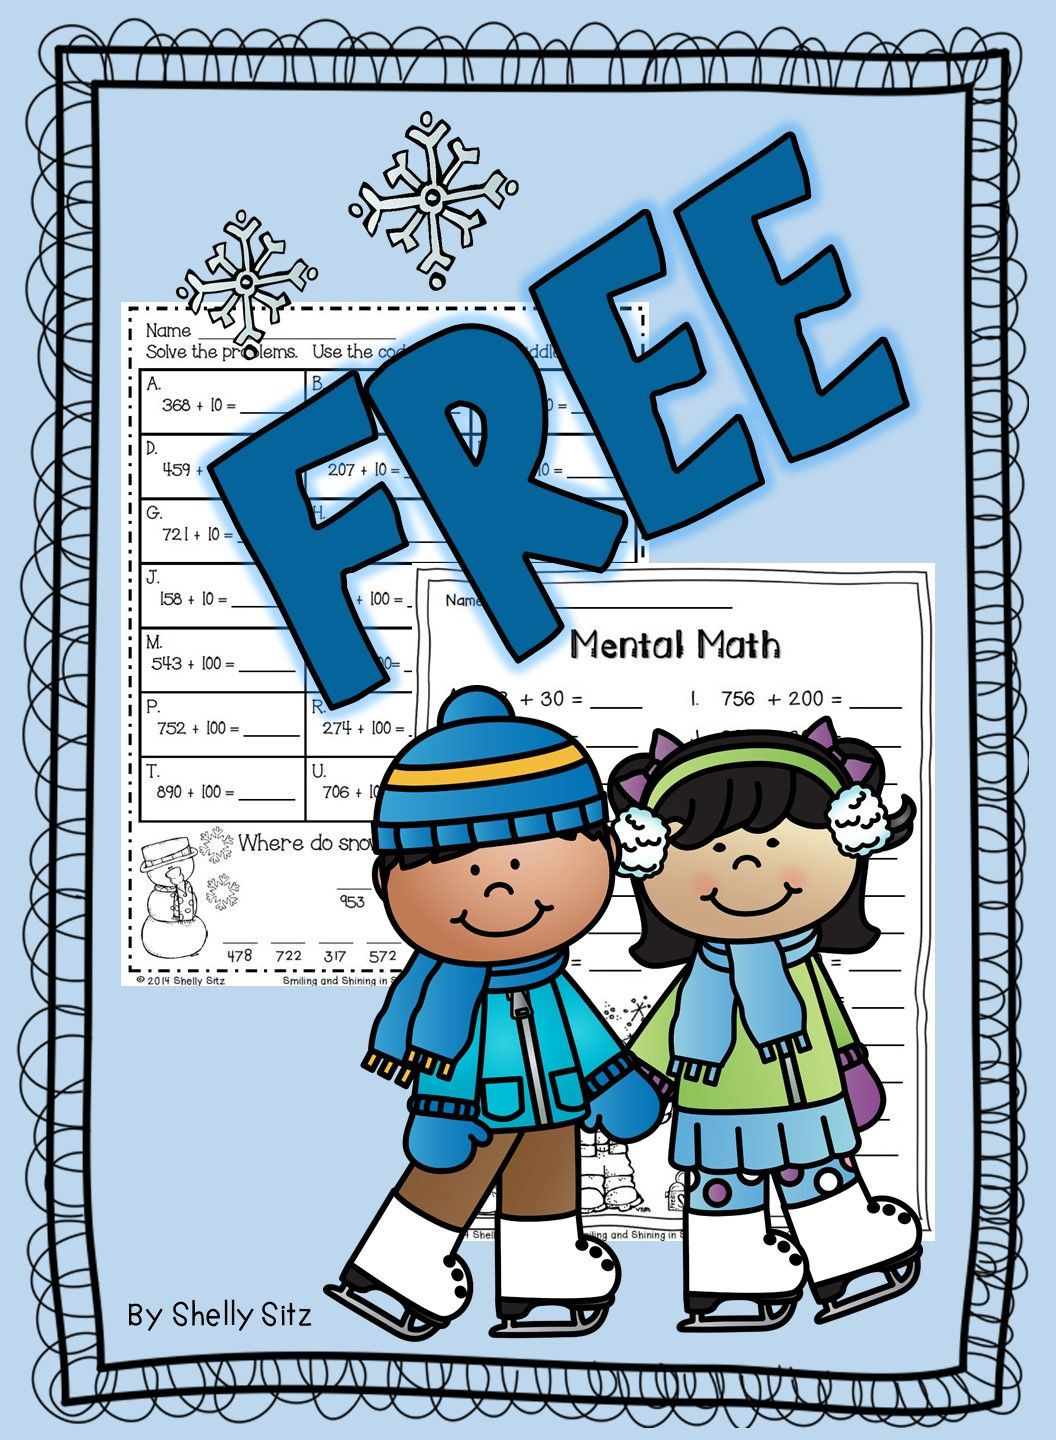 Mental math for second grade--FREE math--10 more, 10 less, 100 more ...